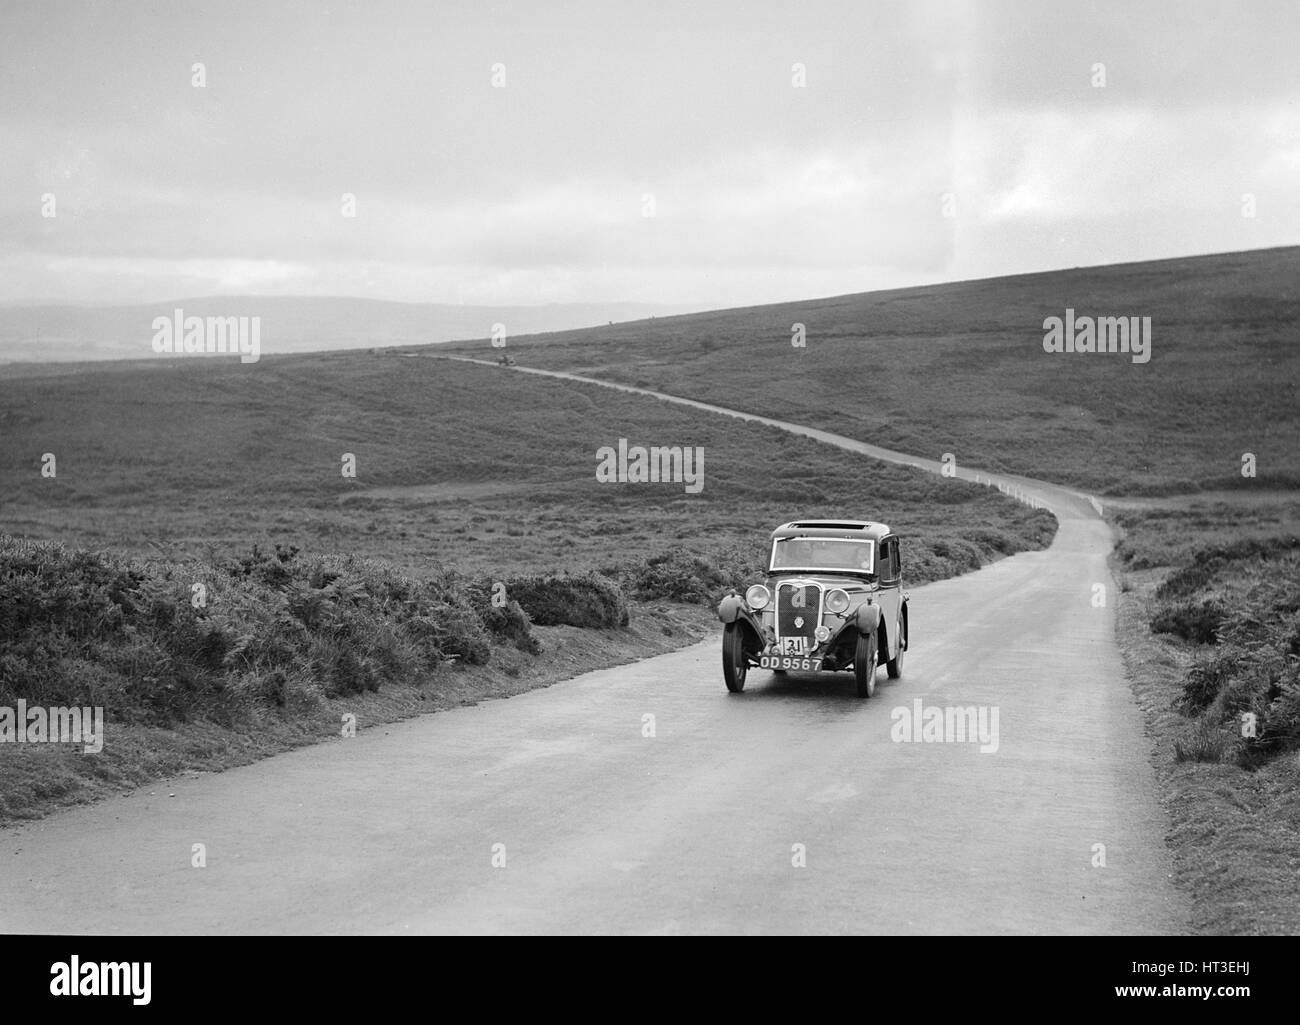 Singer 9 Coupe of DW Biddle, winner of a silver award at the MCC Torquay Rally, July 1937. Artist: Bill Brunell. - Stock Image